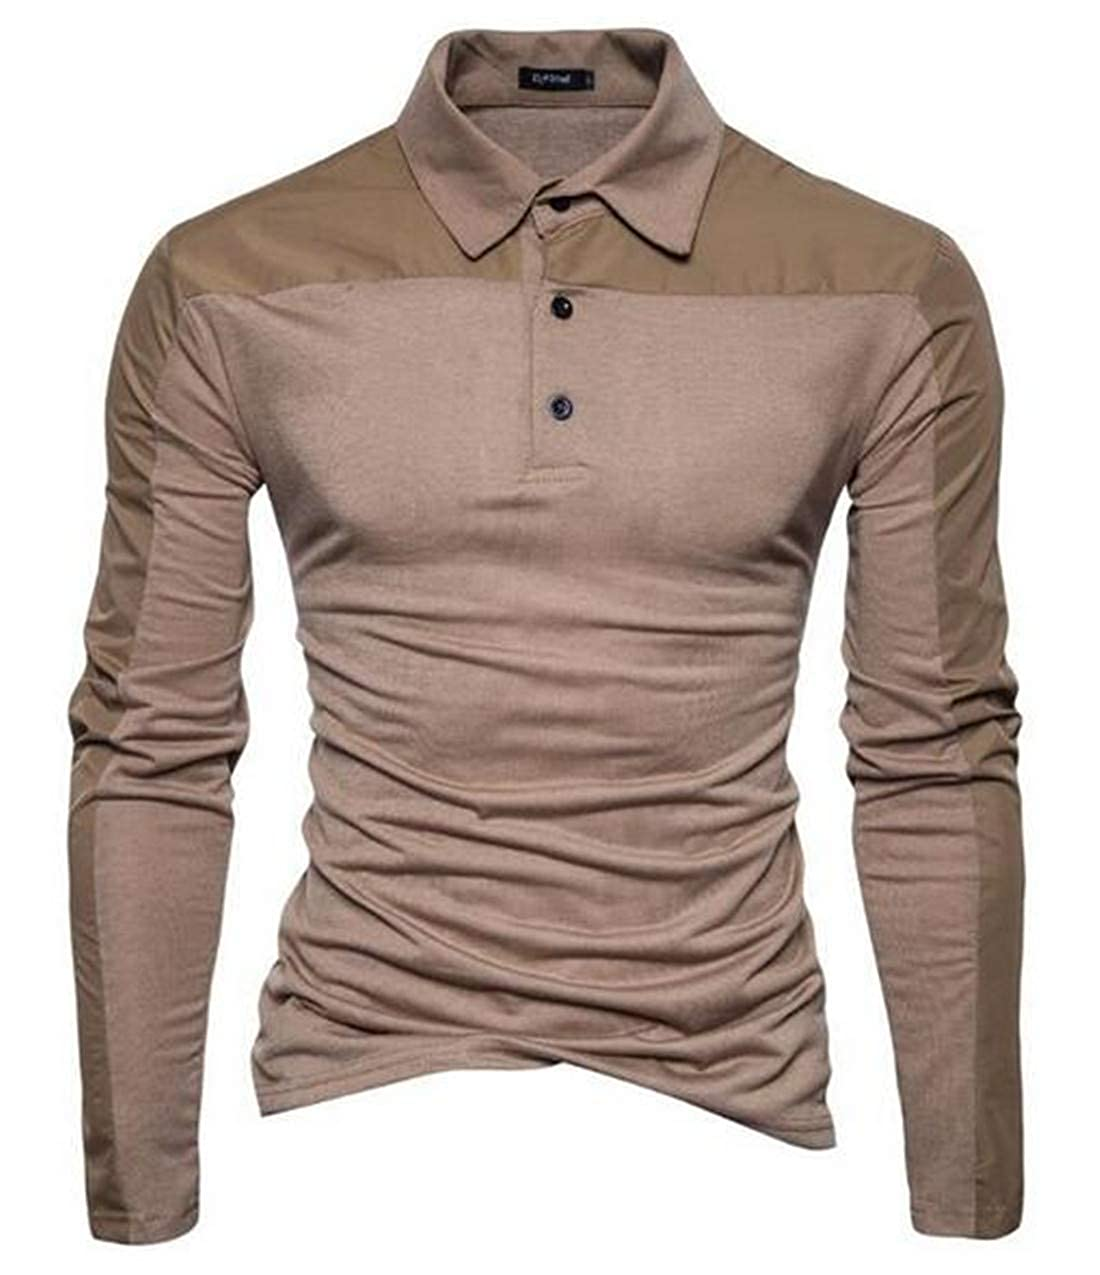 Bywx Men Casual Slim Fit Golf Polo Shirts Athletic Long Sleeve Top